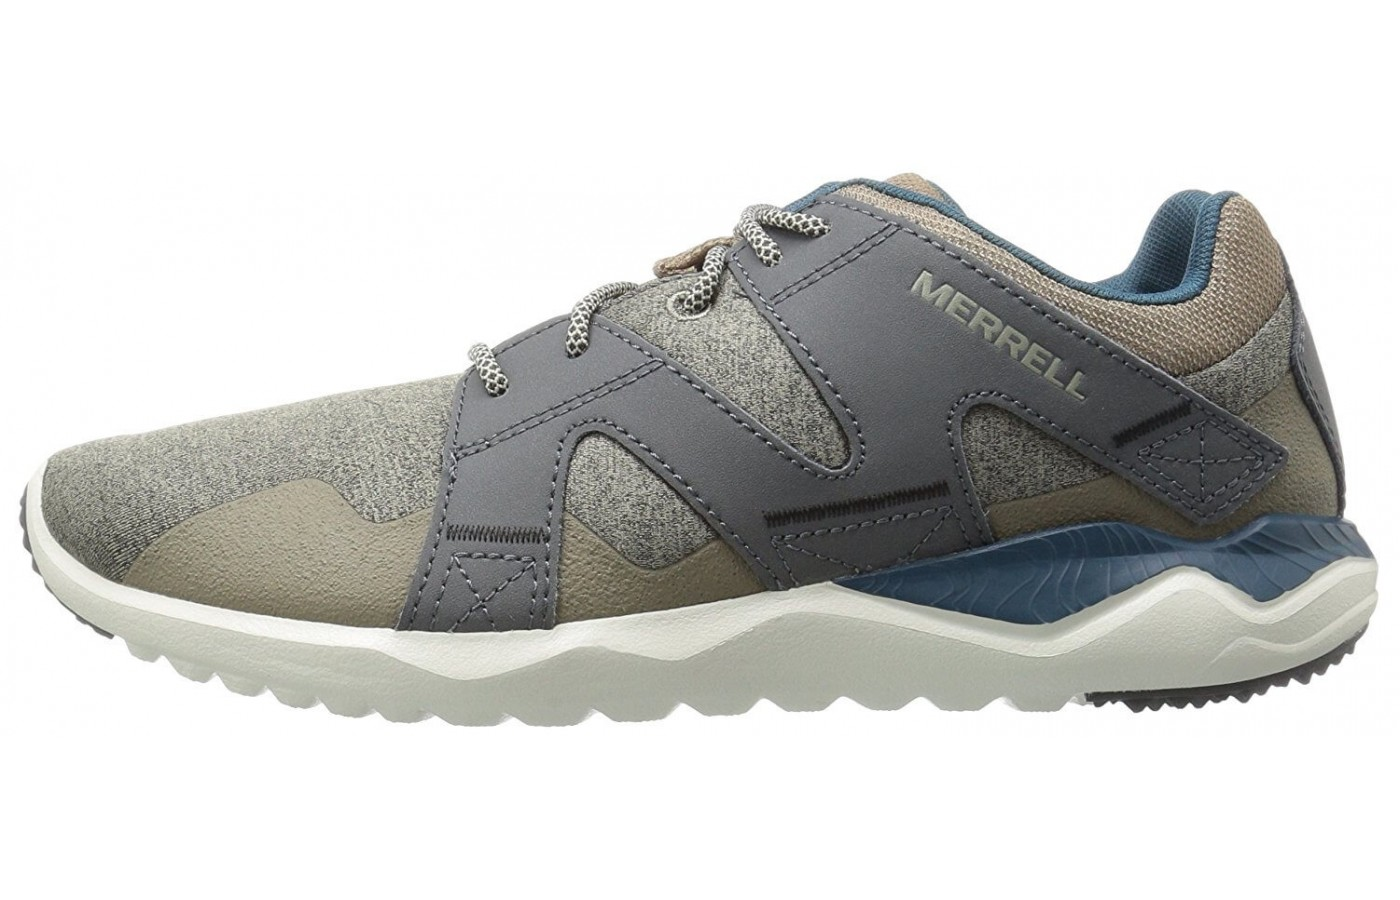 The medial side of the Merrell 1six8 Lace.